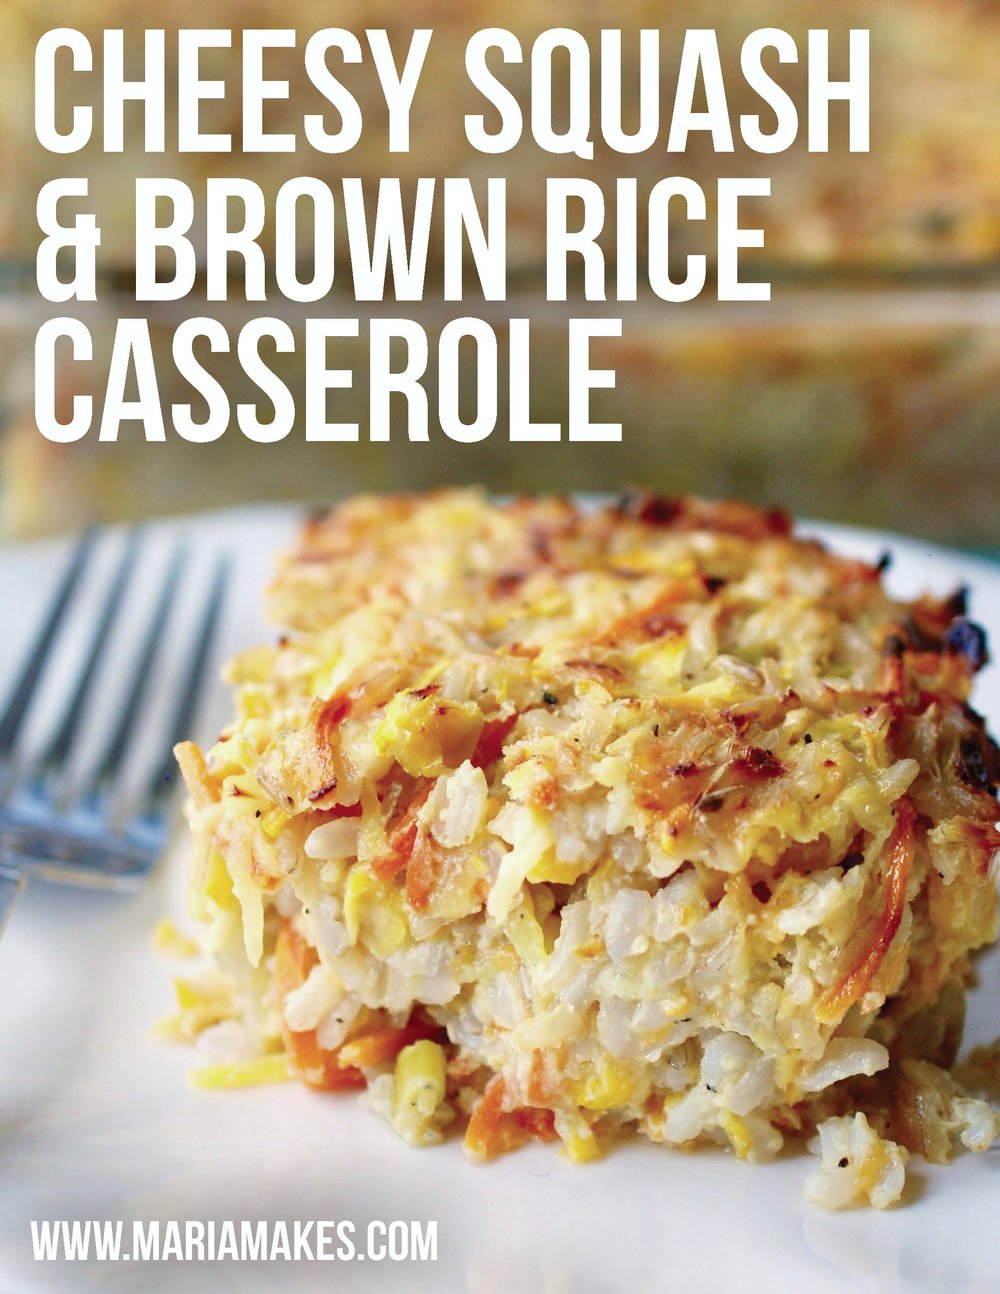 Cheesy Squash & Brown Rice Casserole – Maria Makes: A veggie-PACKED, satisfying and delicious brown rice casserole! Makes a TON so be prepared for leftovers (or cut the recipe in half!). Perfect way to use up yellow squash or zucchini!